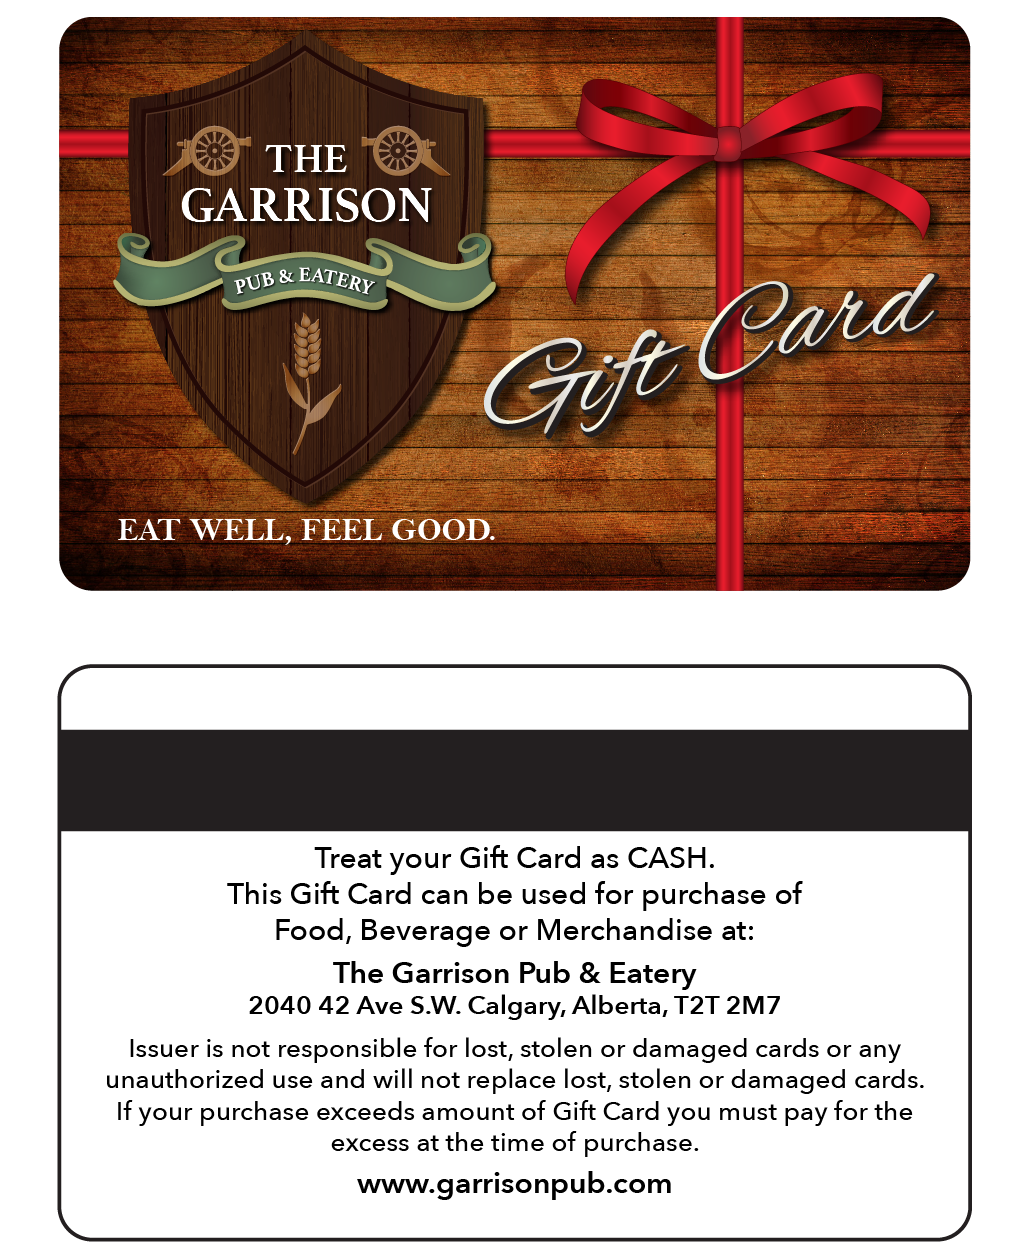 GIFT CARD SCREEN SHOT.png